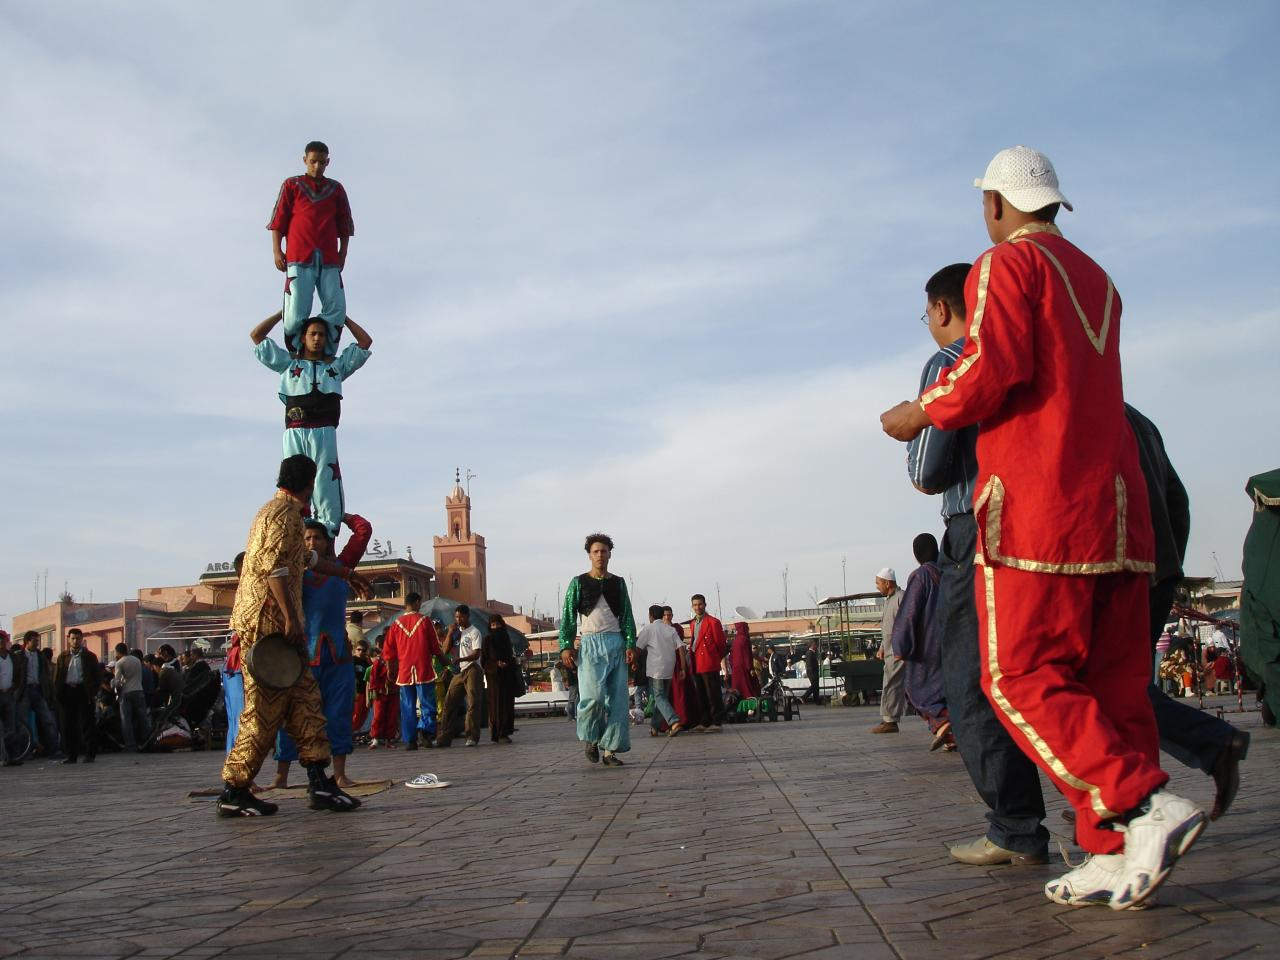 Acrobats in Jemaa el-Fnaa square in Marrakech